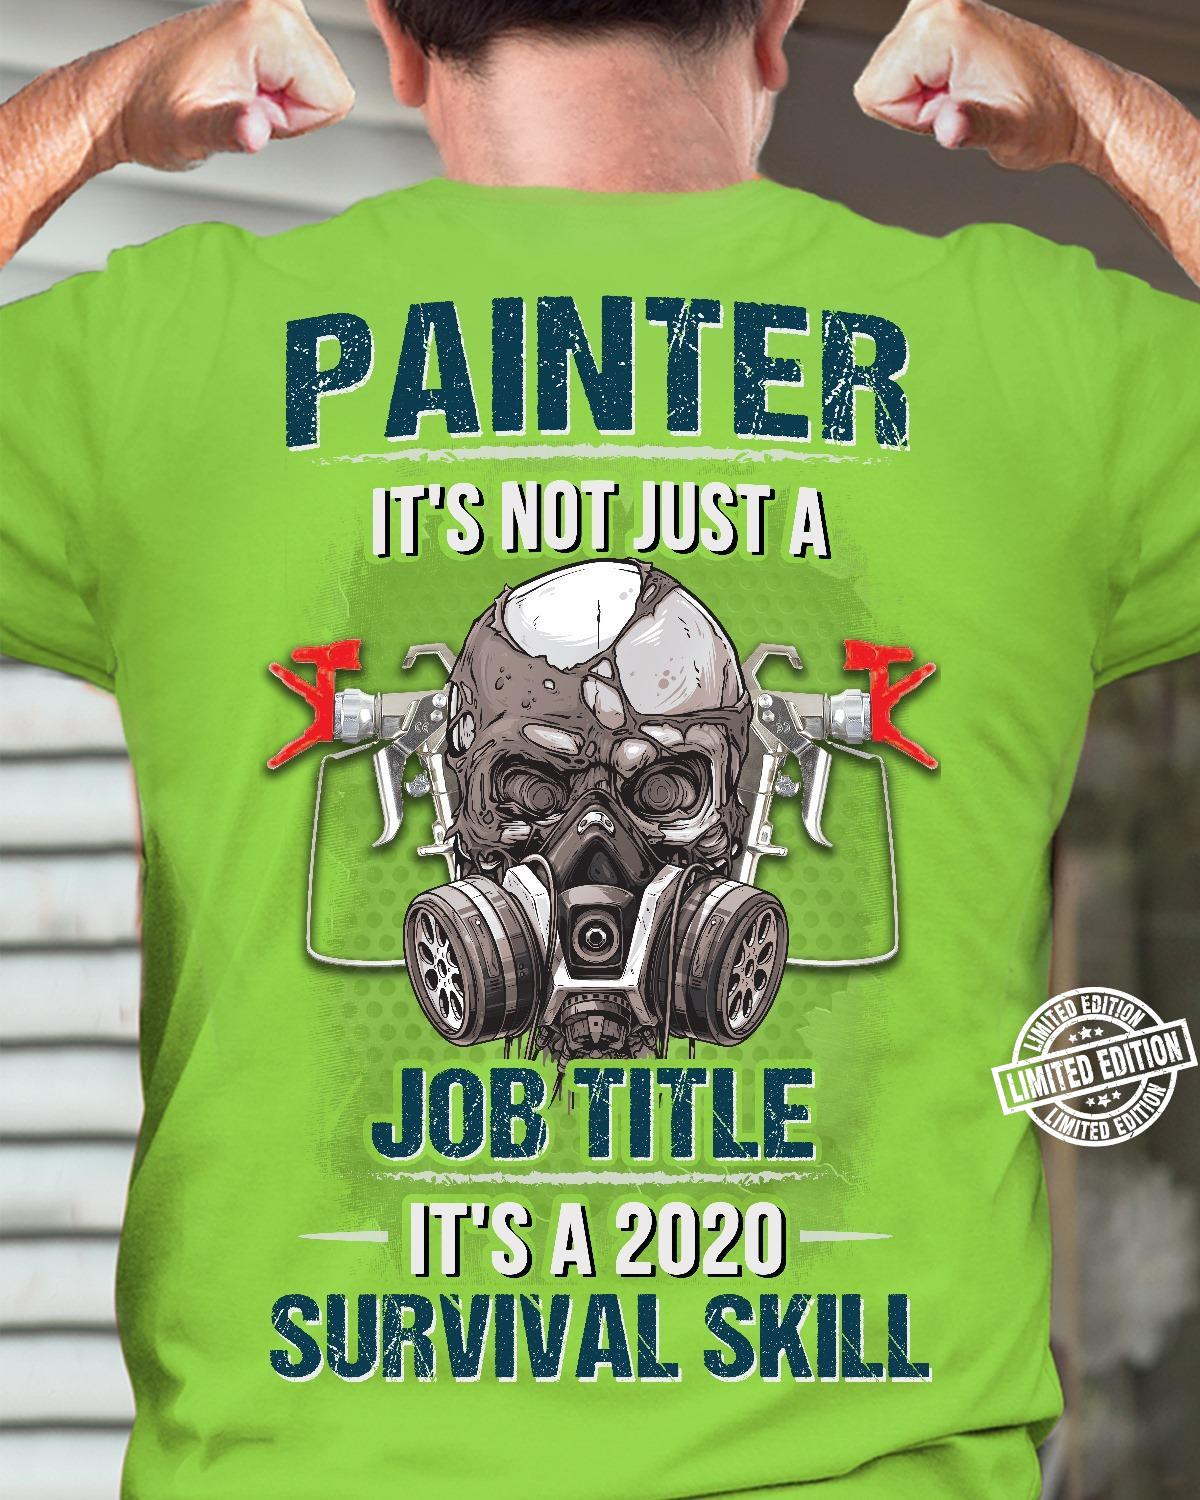 Painter it's not just a job title it's a 2020 survival skill shirt